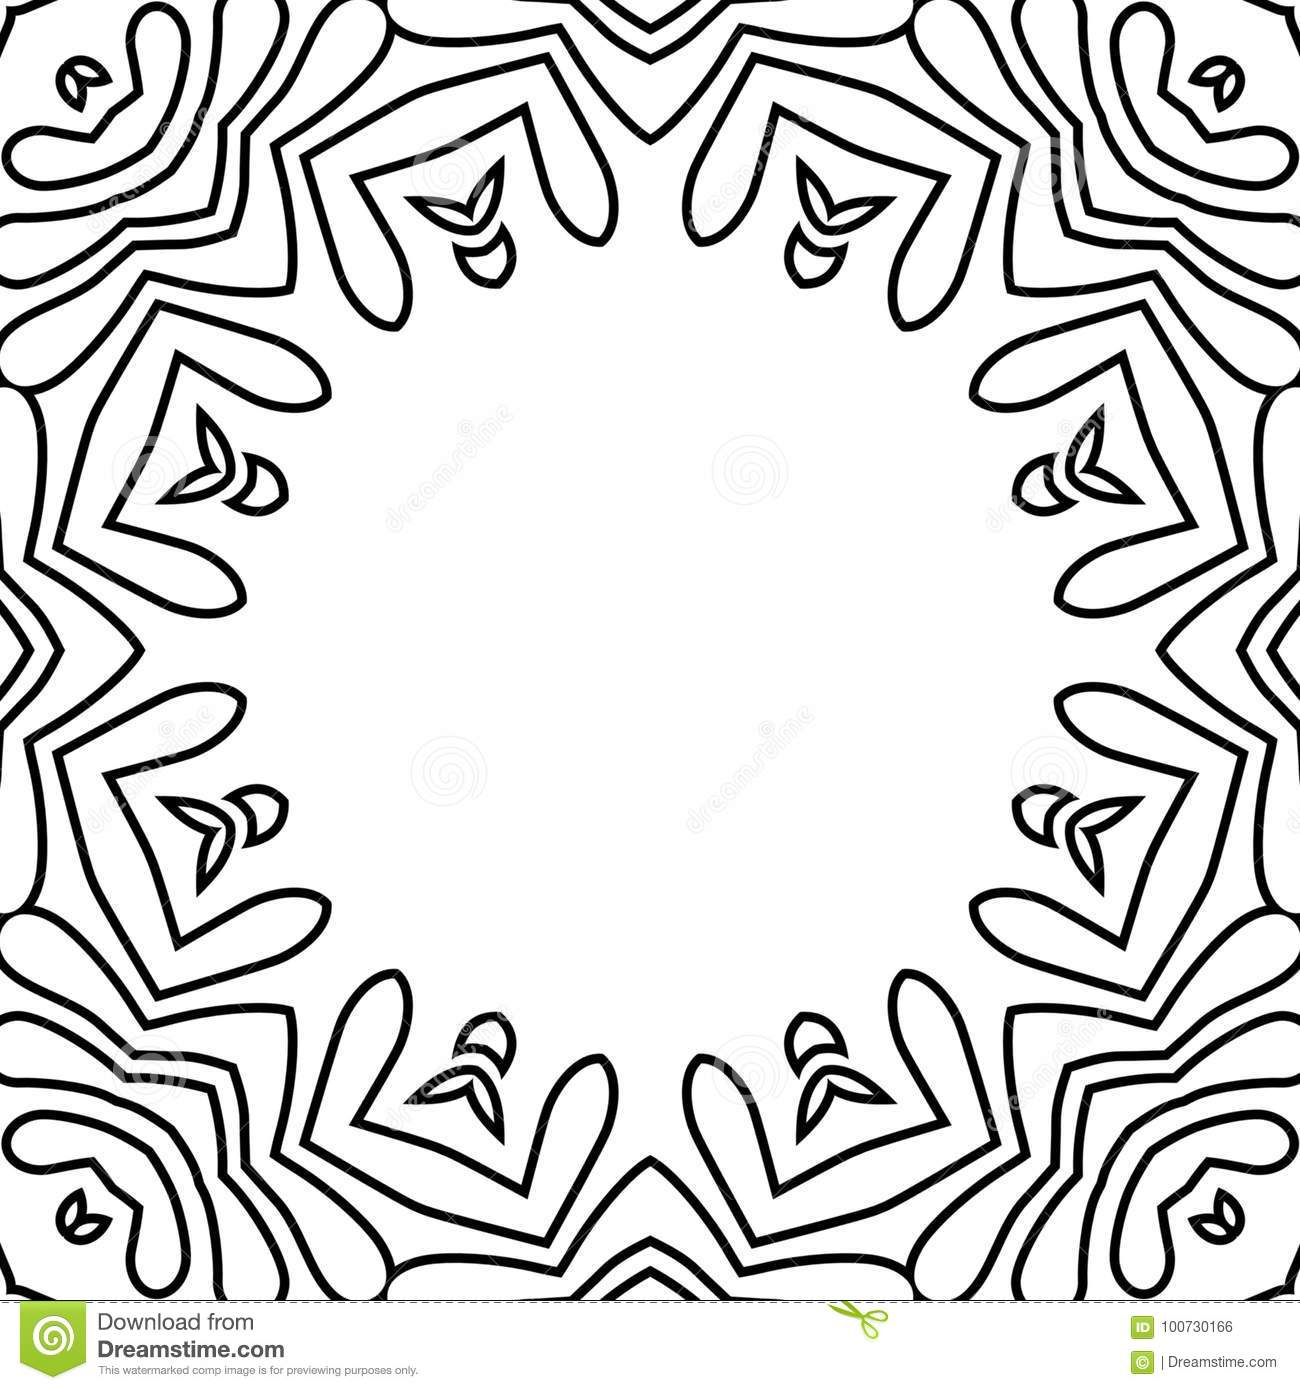 Black and white flower frame tecture stock illustration download black and white flower frame tecture stock illustration illustration of pattern illustration mightylinksfo